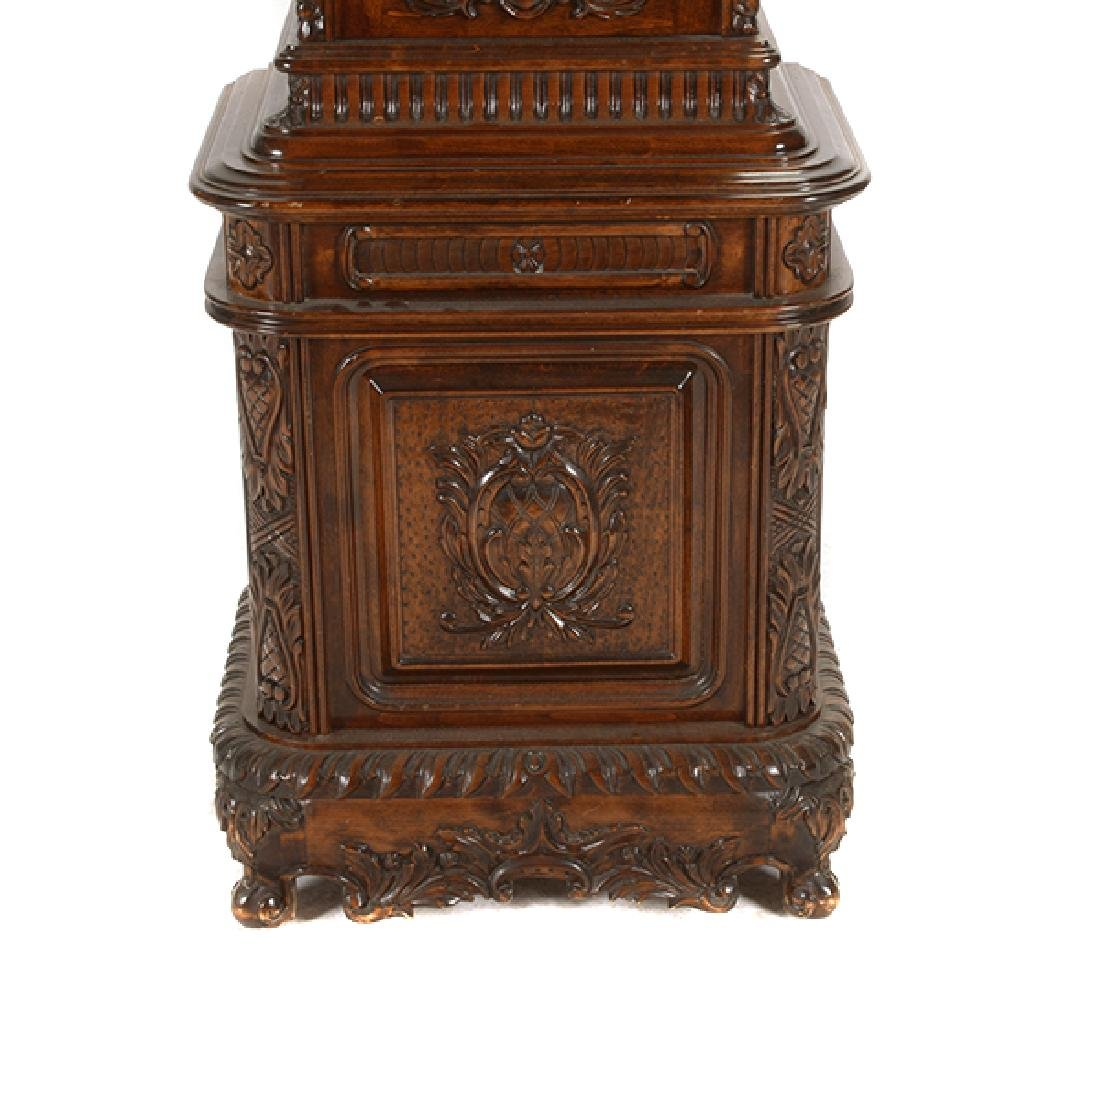 Continental Rococo Style Walnut Tall Case Clock - 9